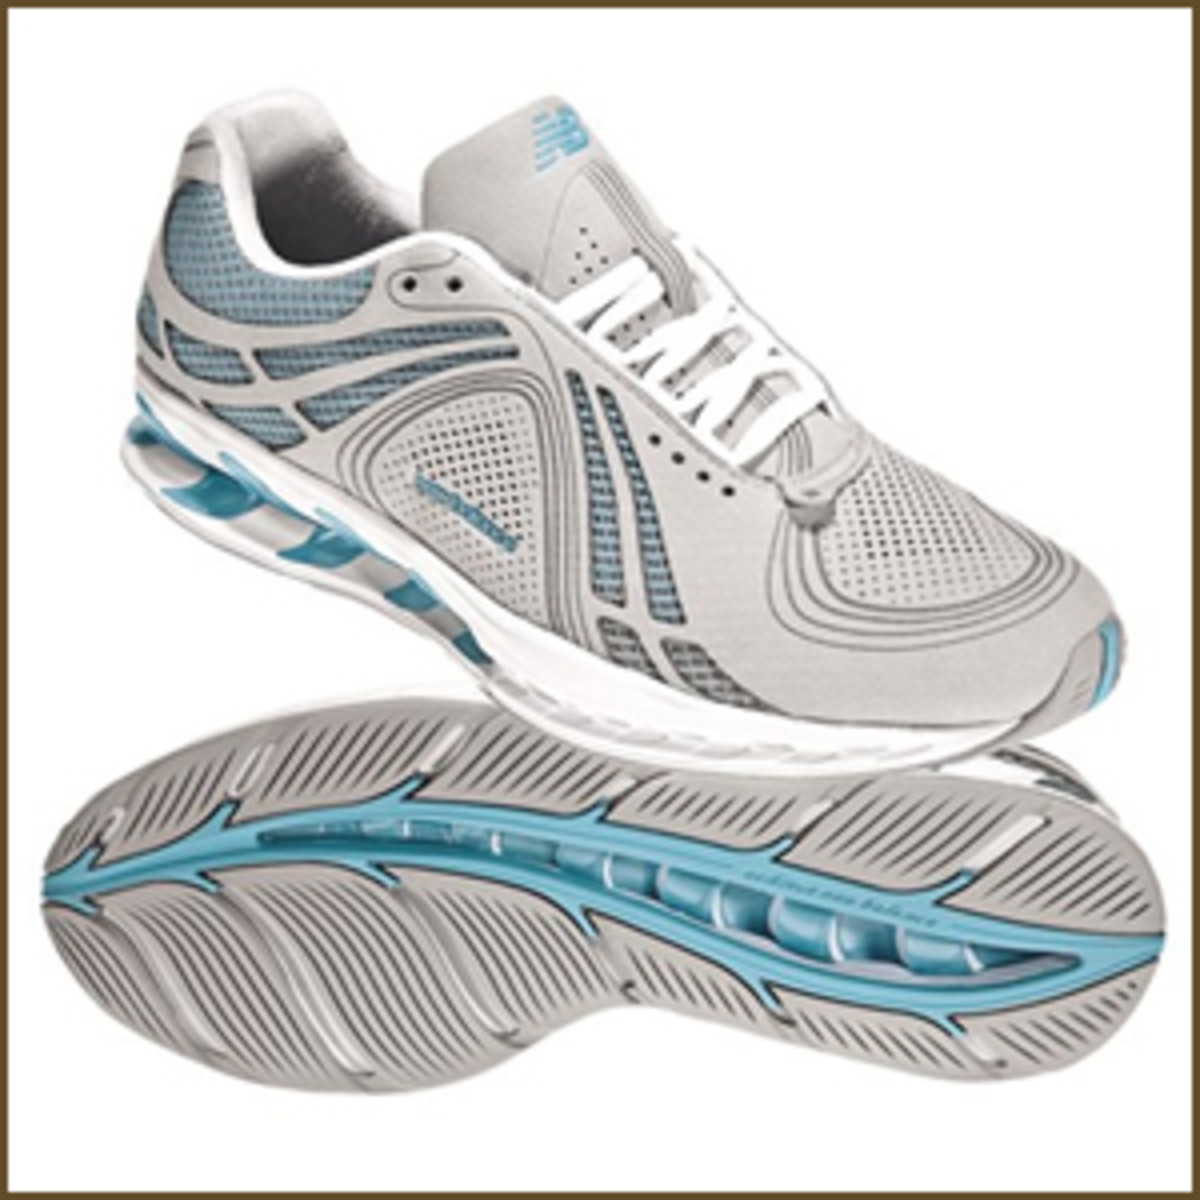 The best looking toning shoes to date. The NB True Balance 850 & 1100